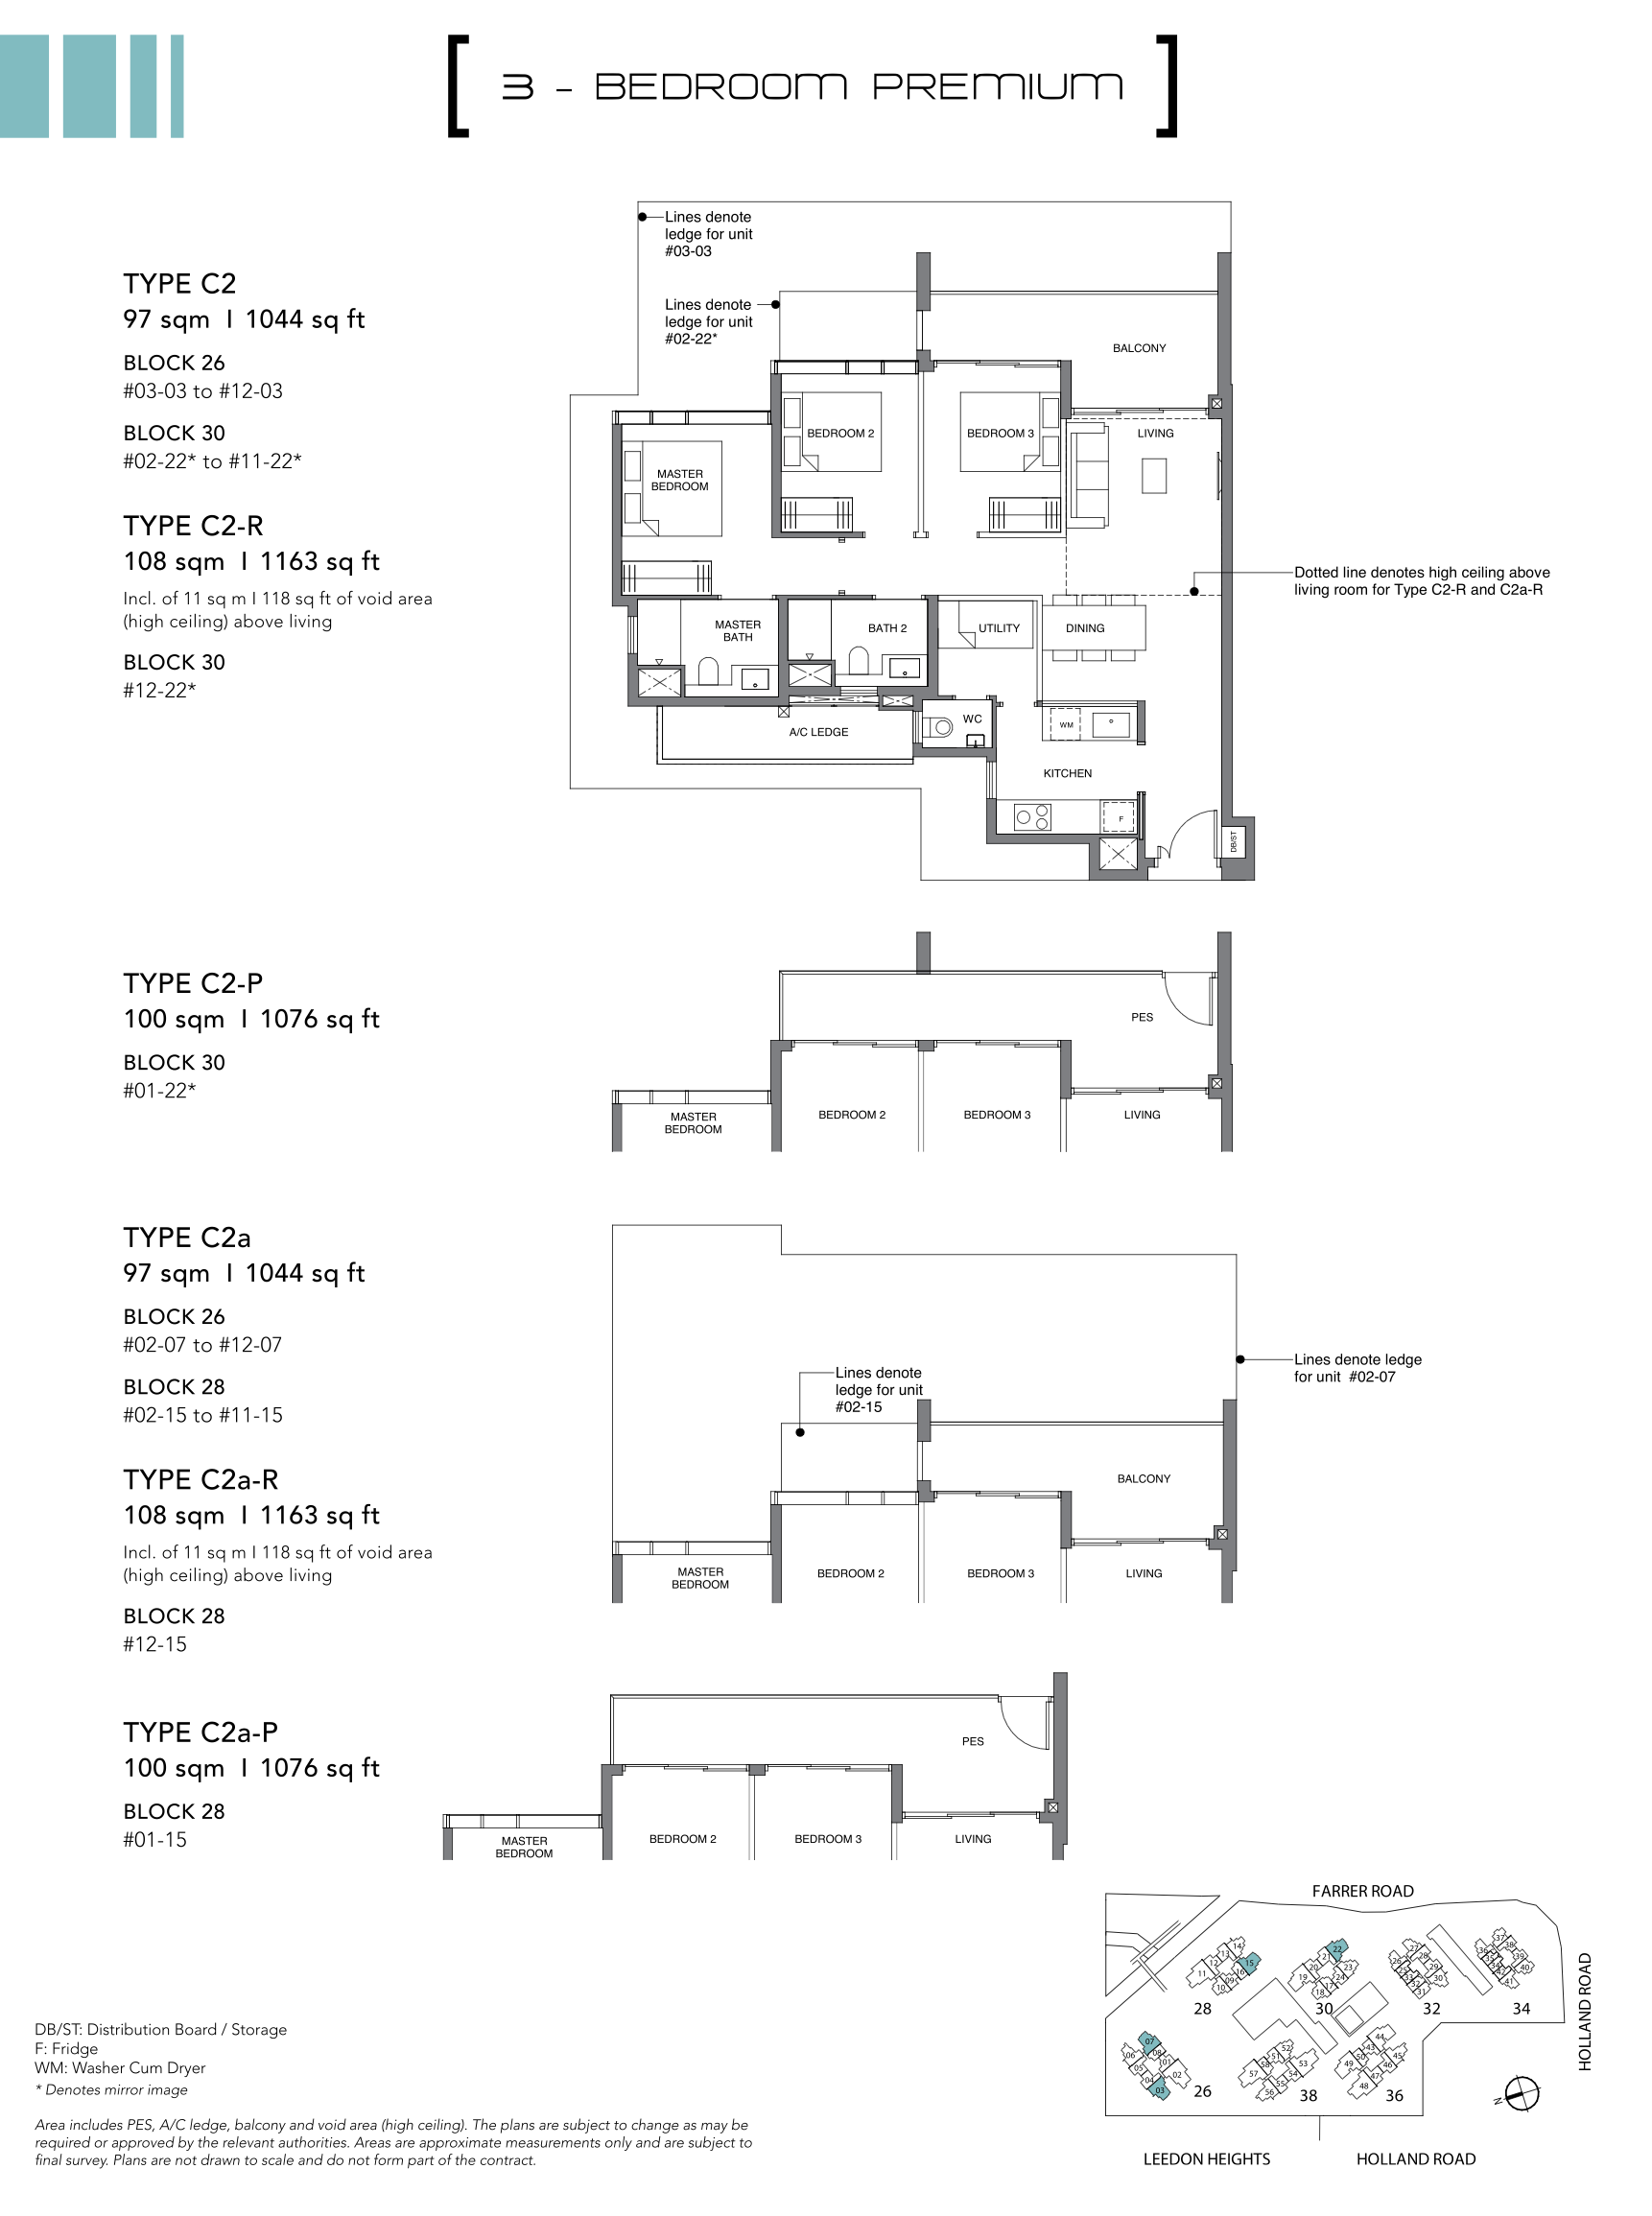 绿墩雅苑公寓户型图 Leedon Green floor plan 3 bedroom premium c2